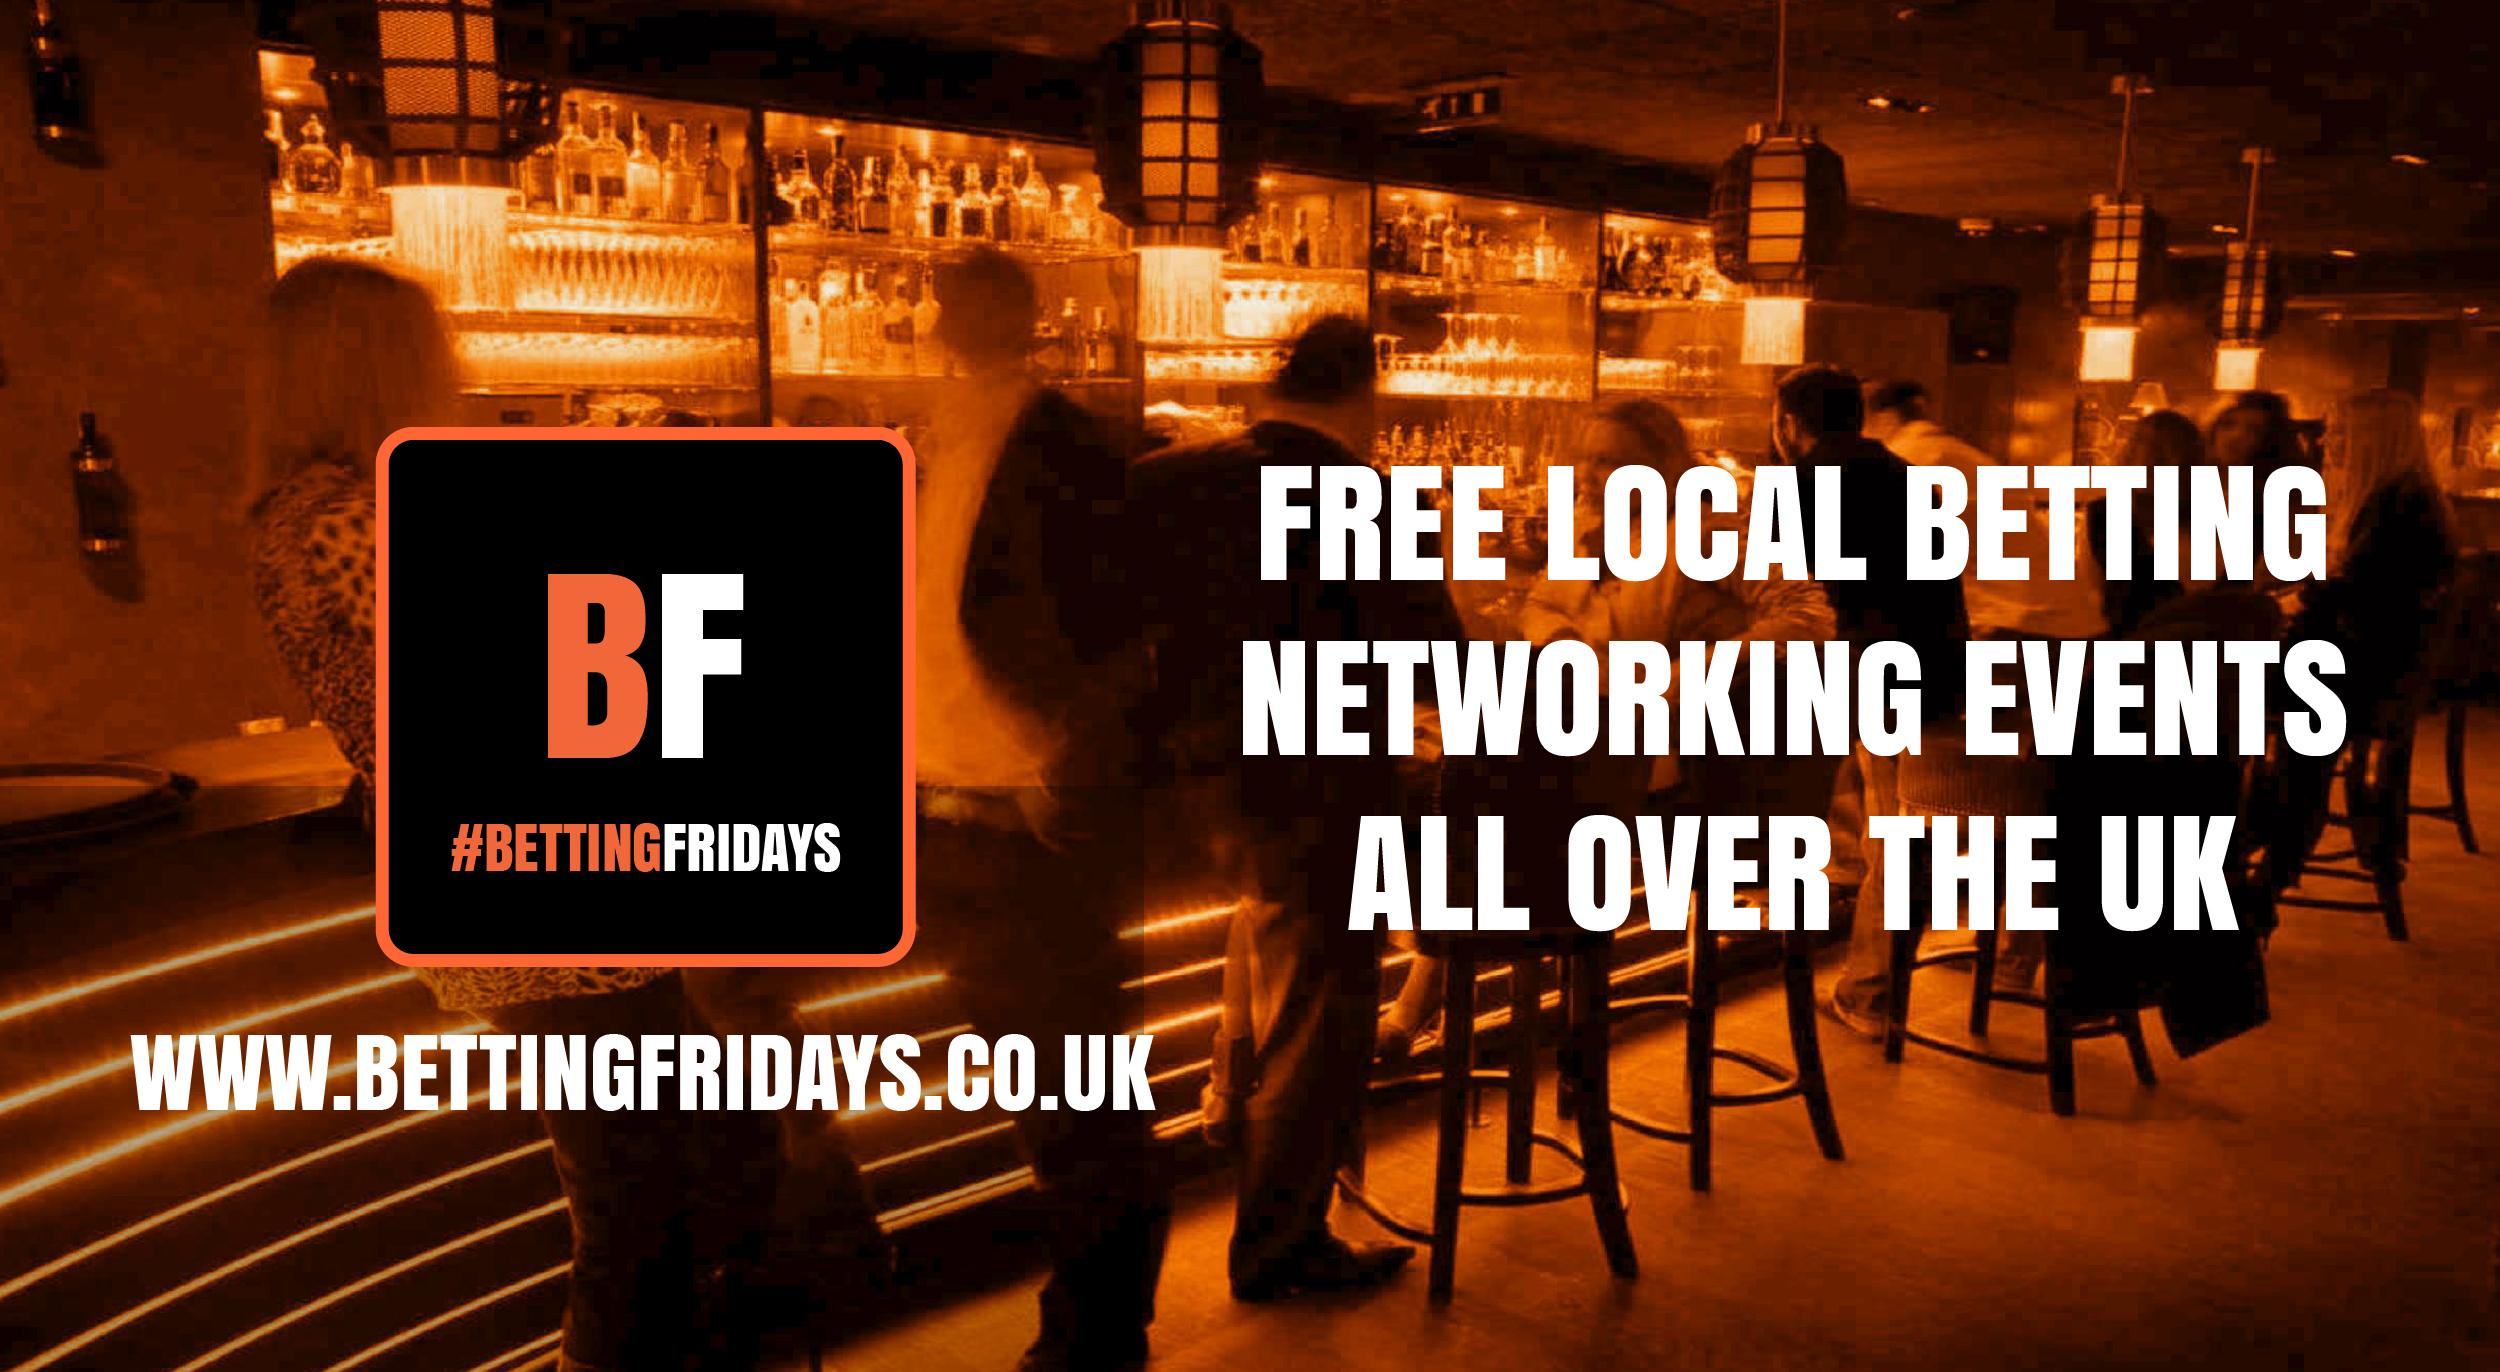 Betting Fridays! Free betting networking event in Bracknell